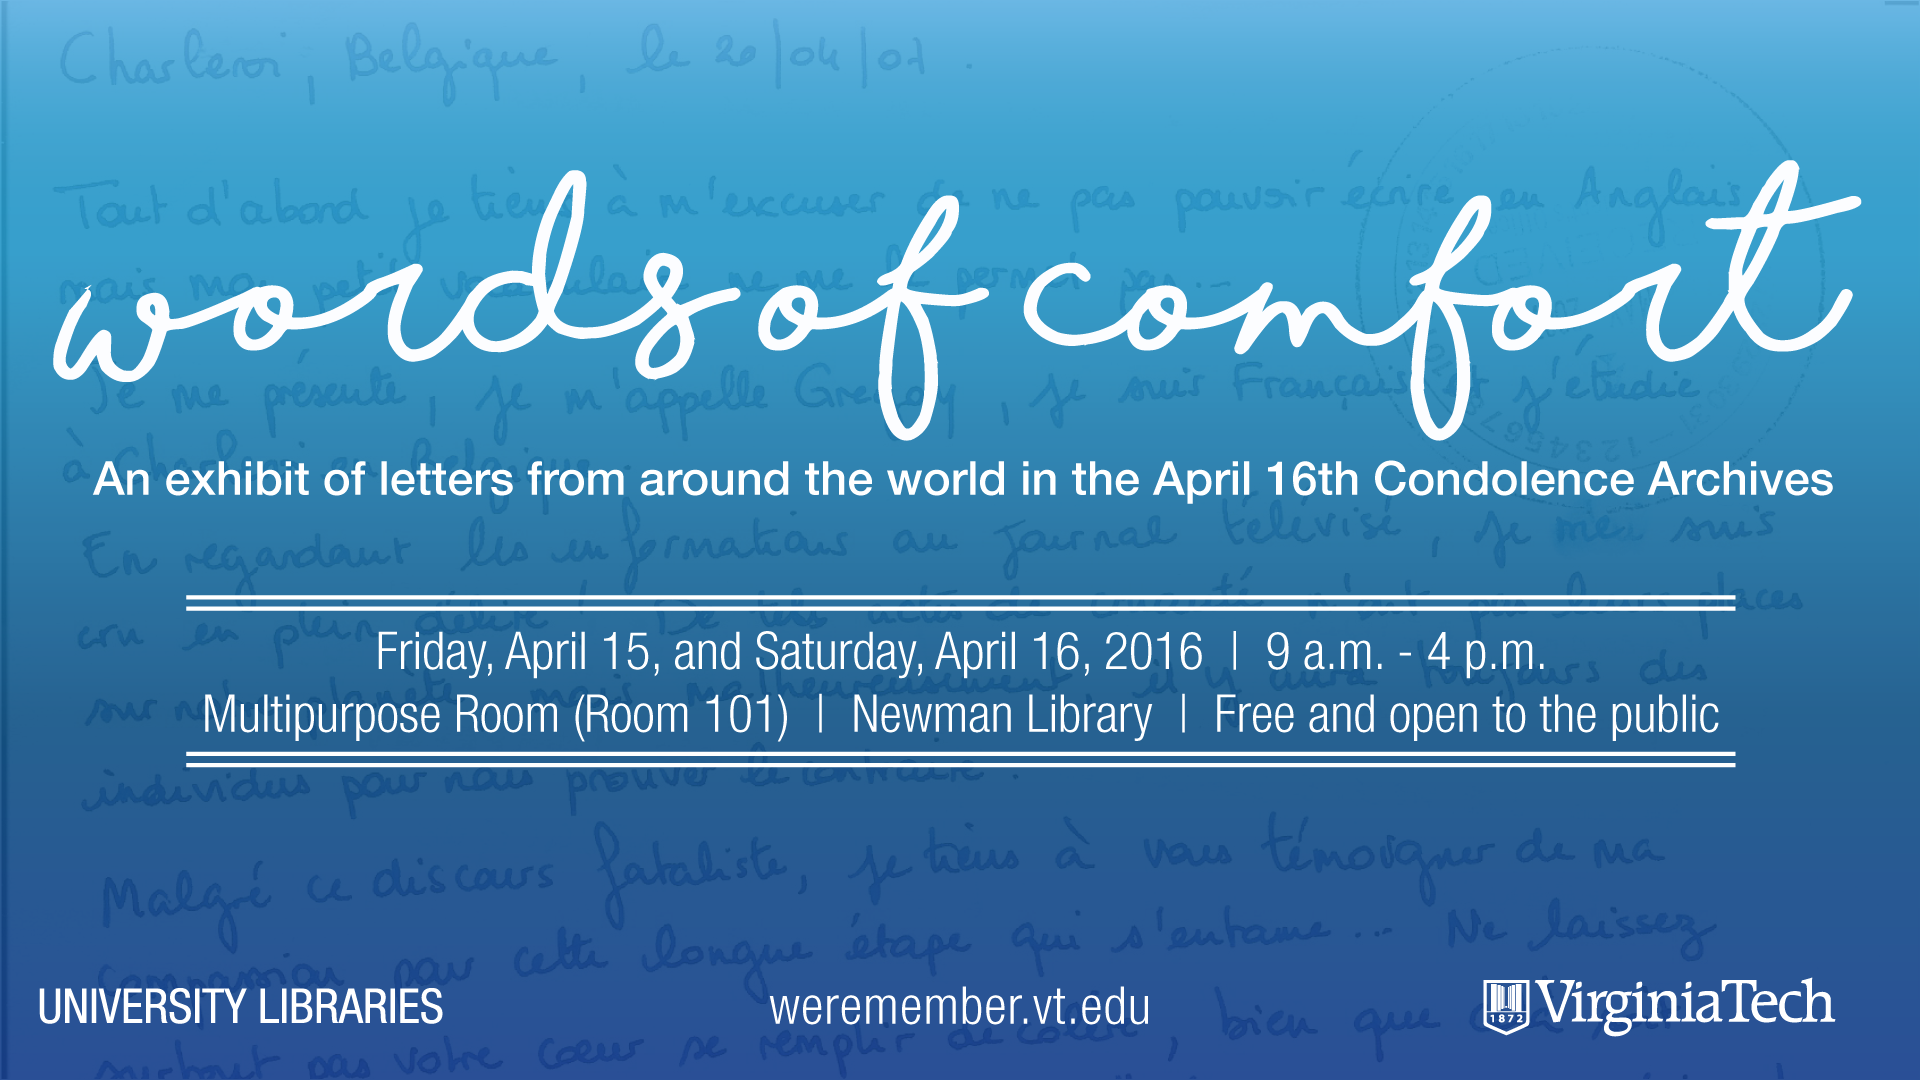 Words of Comfort: An exhibit of letters from around the world in the April 16th Condolence Archives